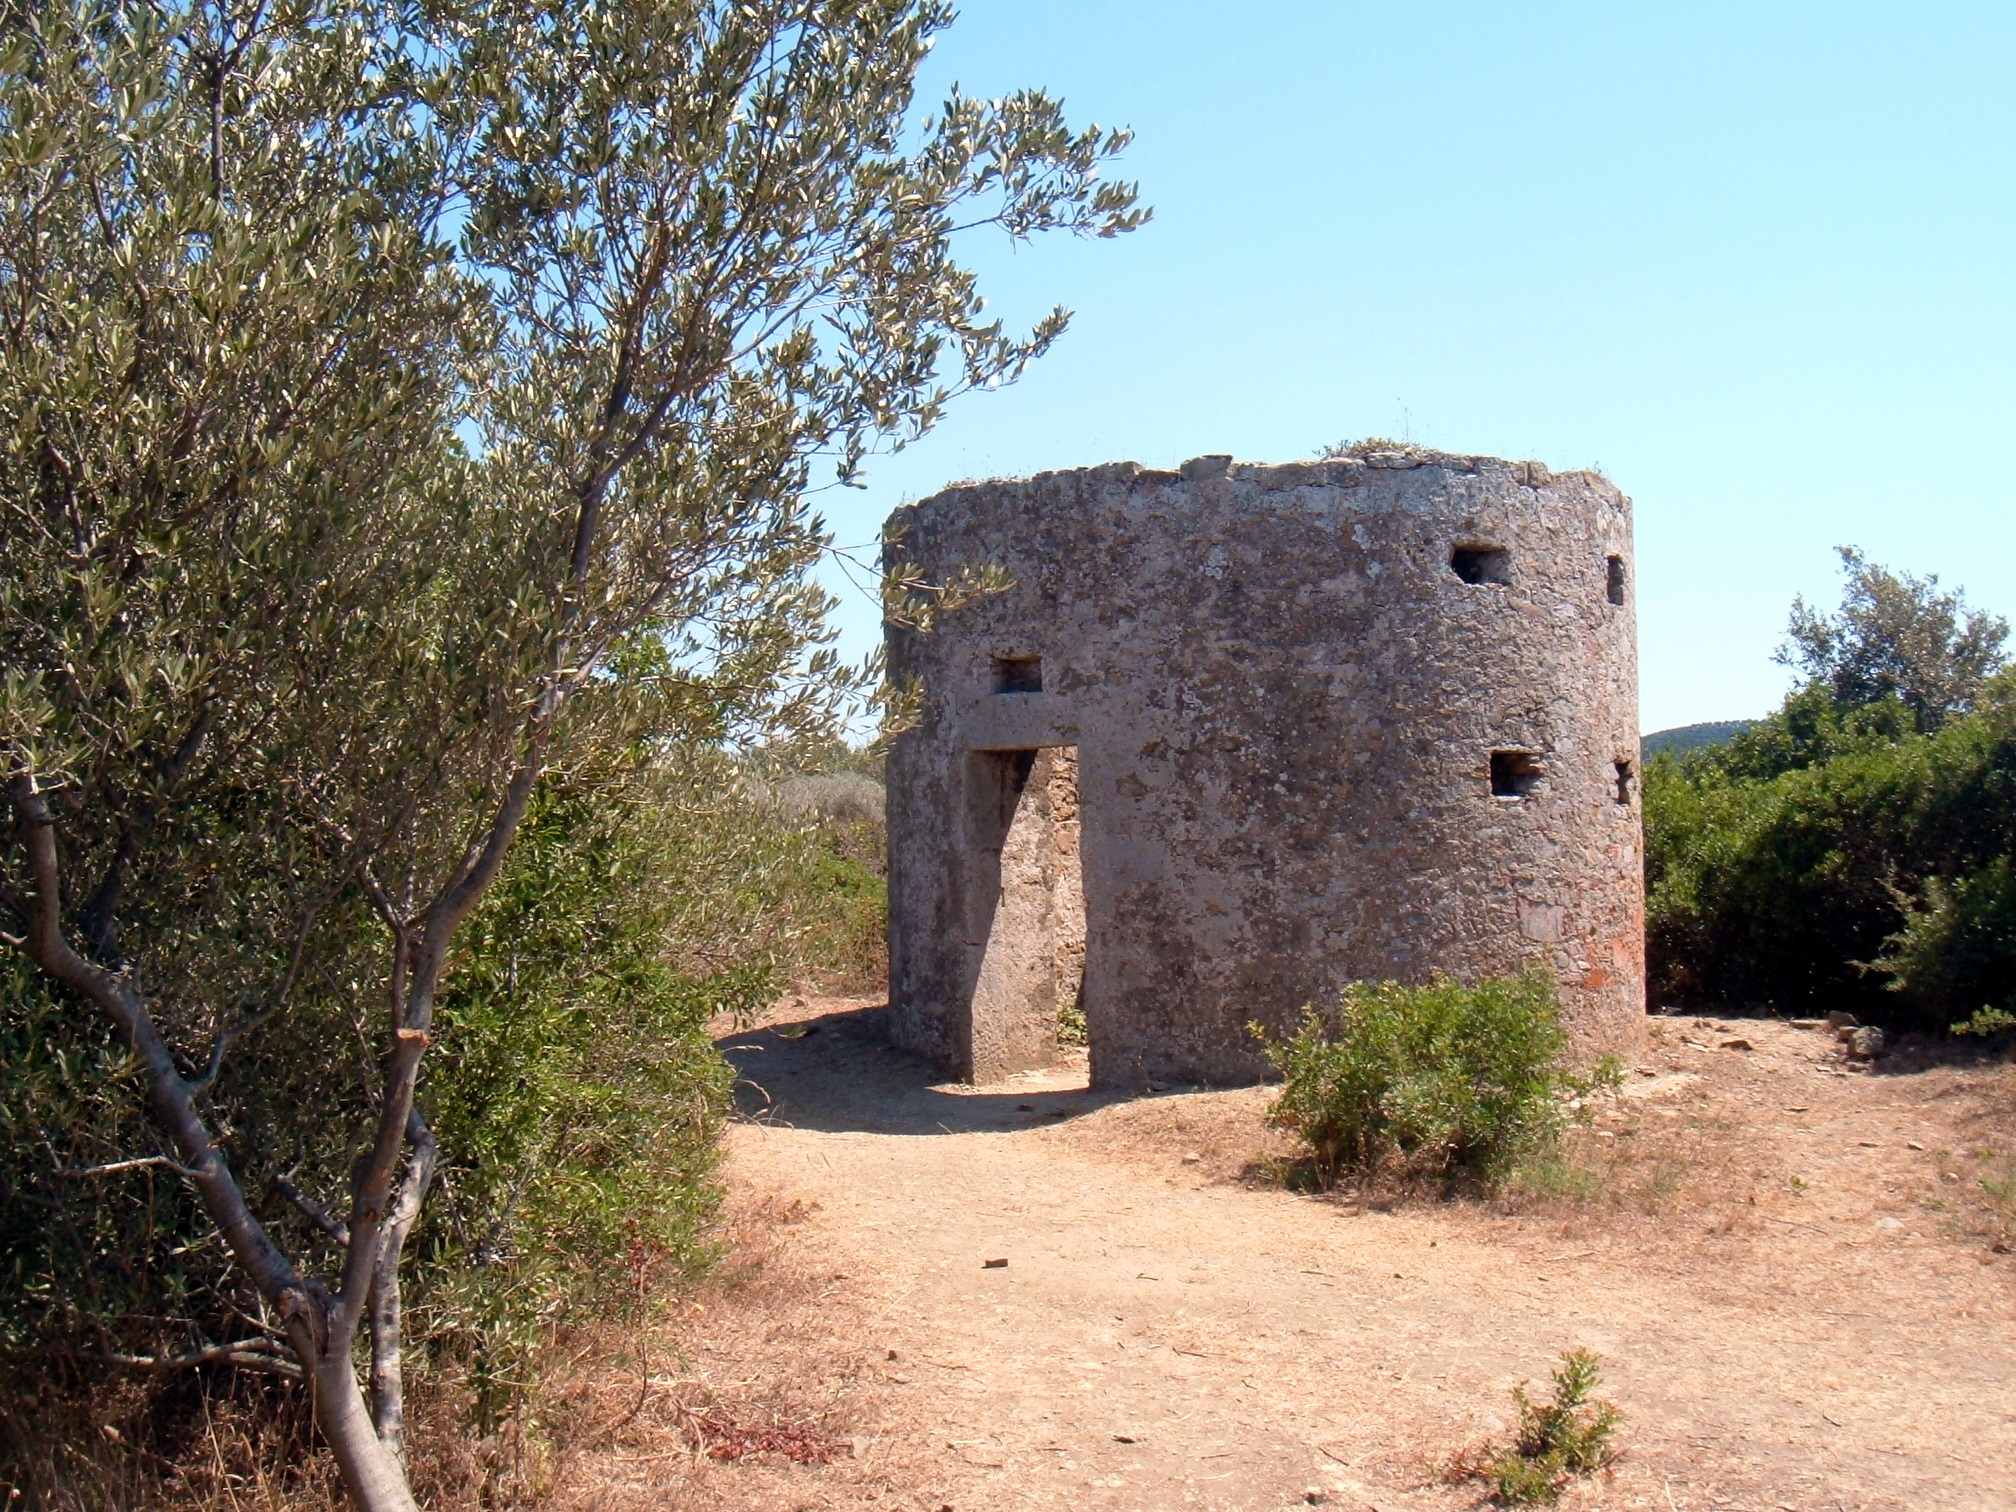 Acropolis of Populonia, tower